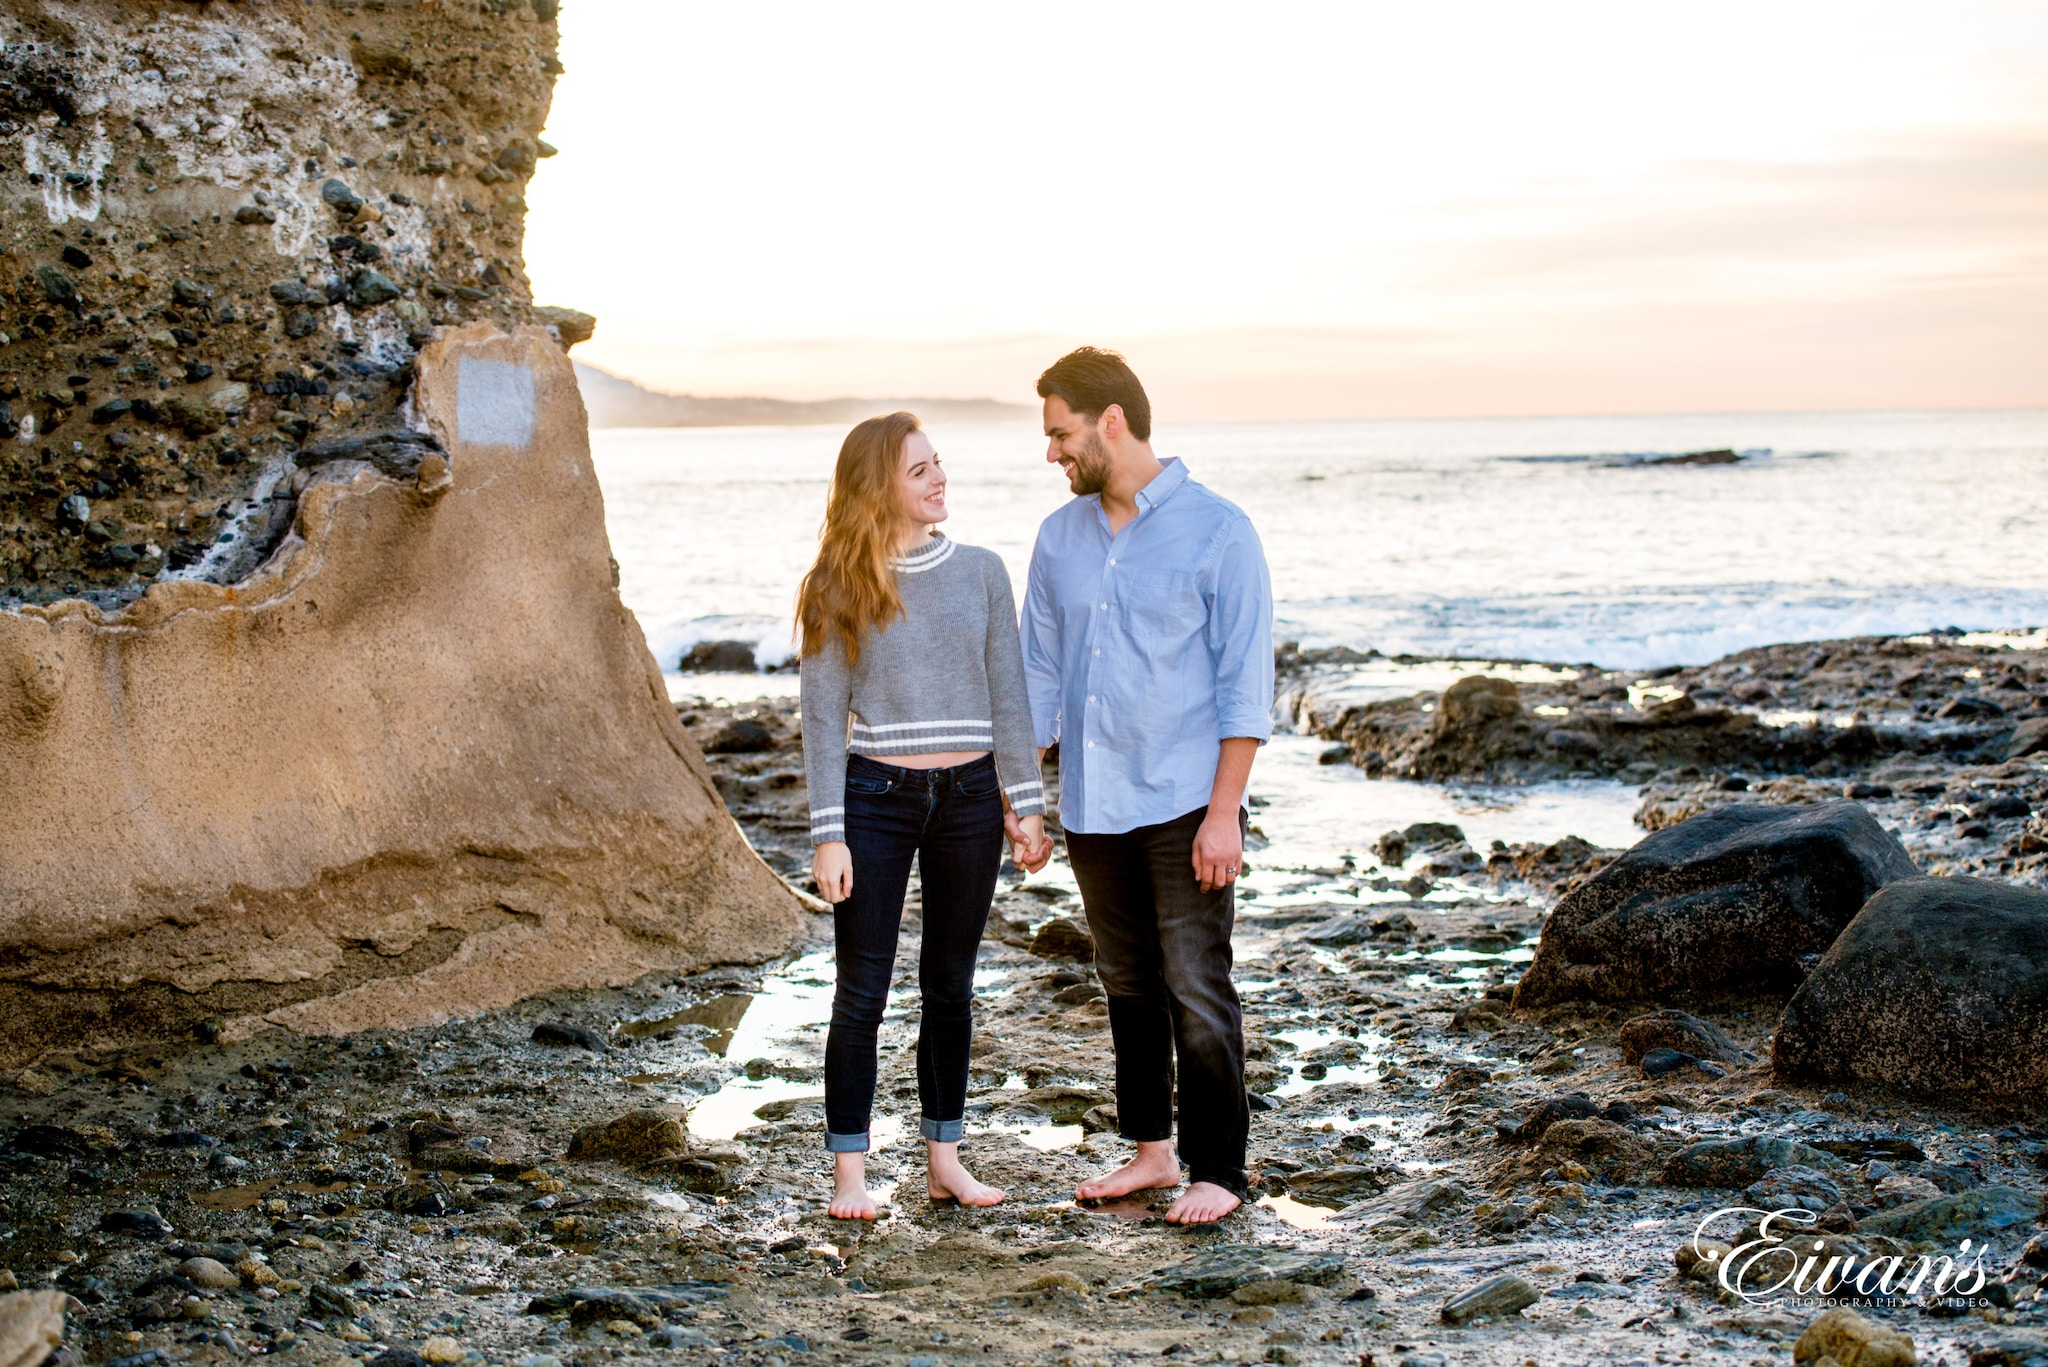 man and woman standing on rocky shore during daytime